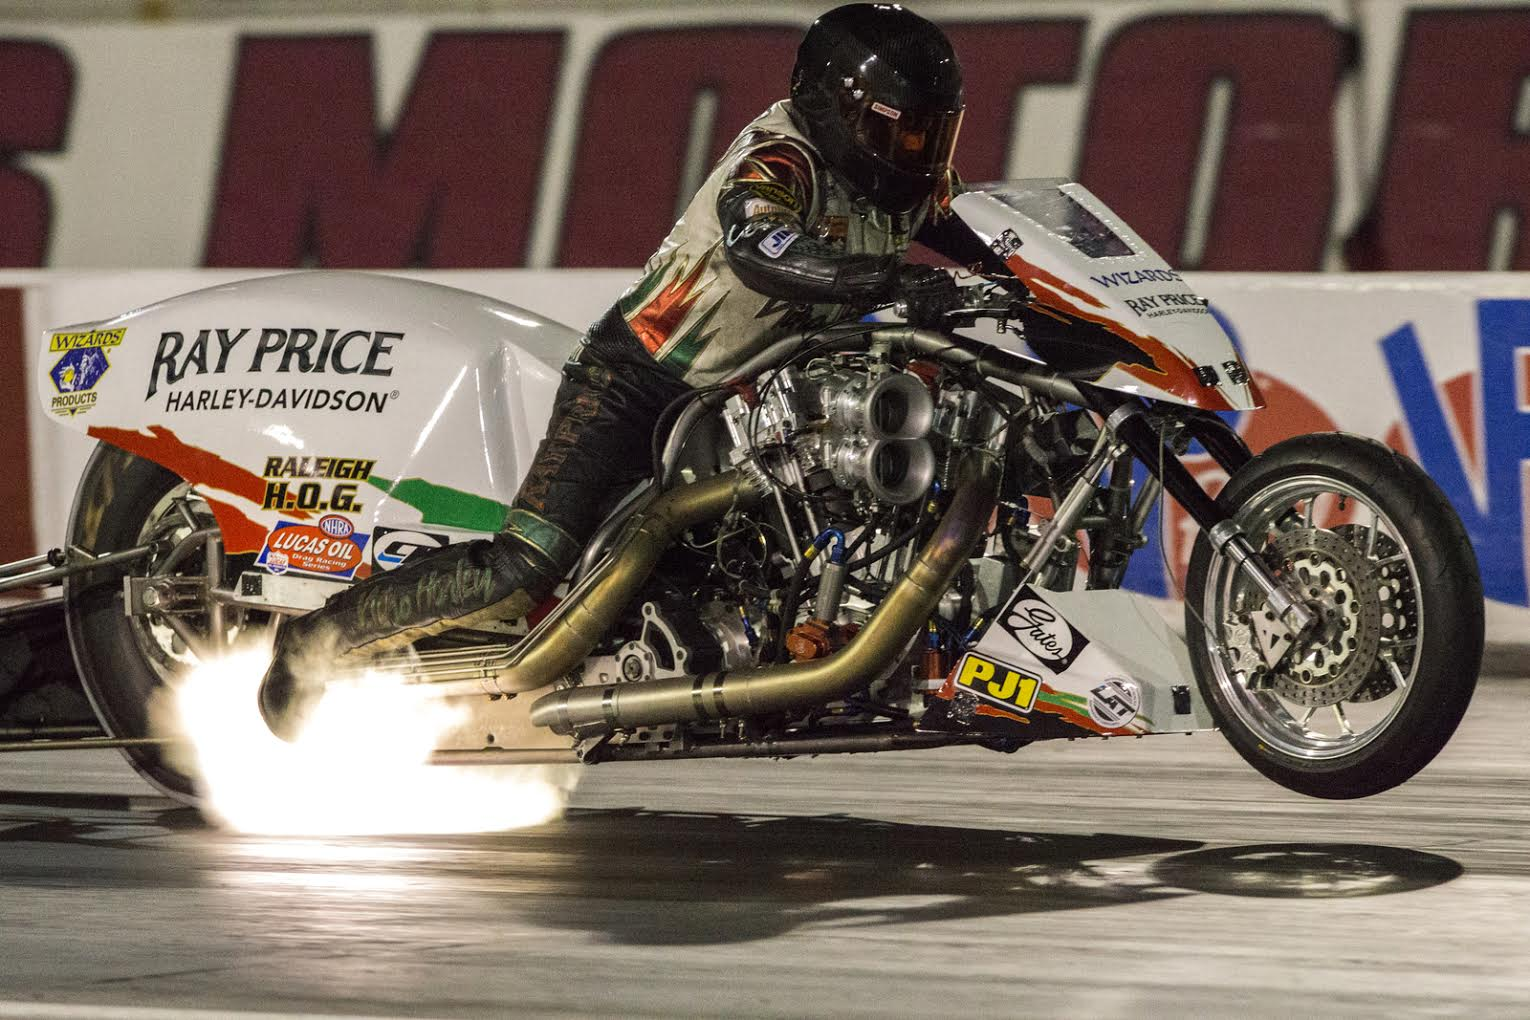 nhra harley davidson drag racing series champions crowned at las vegas finals iron trader news. Black Bedroom Furniture Sets. Home Design Ideas